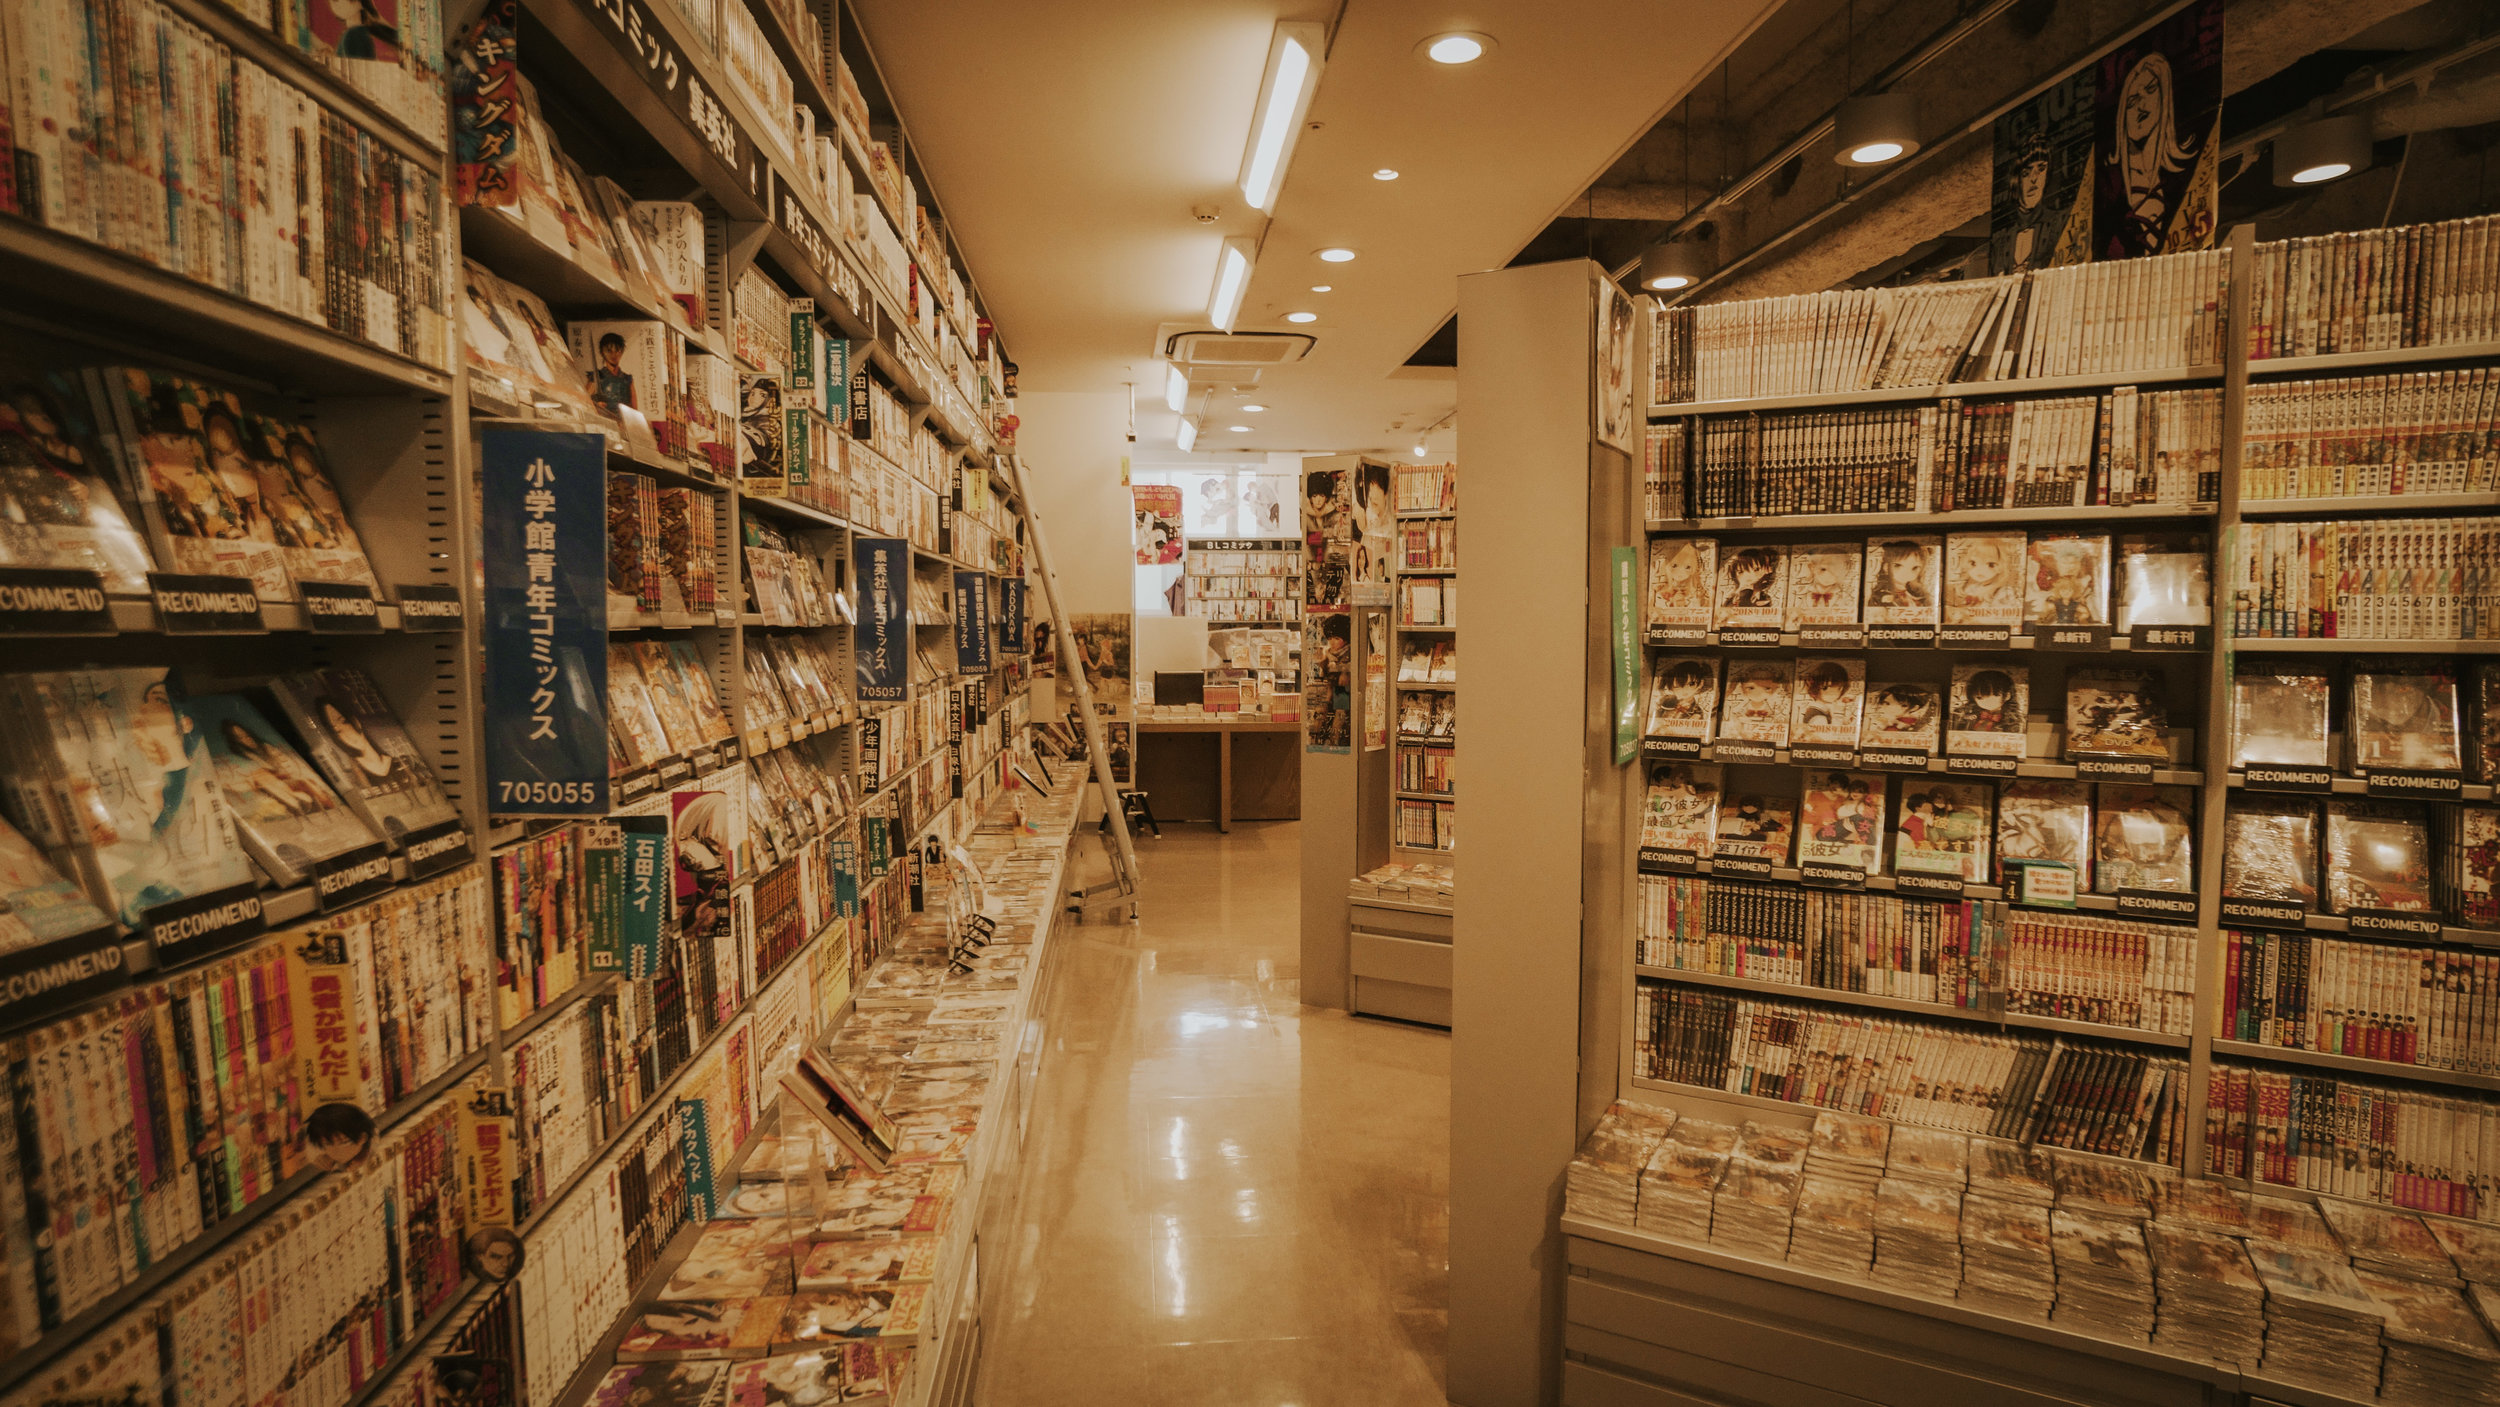 Dozens of rows jam-packed with a variety of manga, anime, and hentai to fulfill your reading experience.